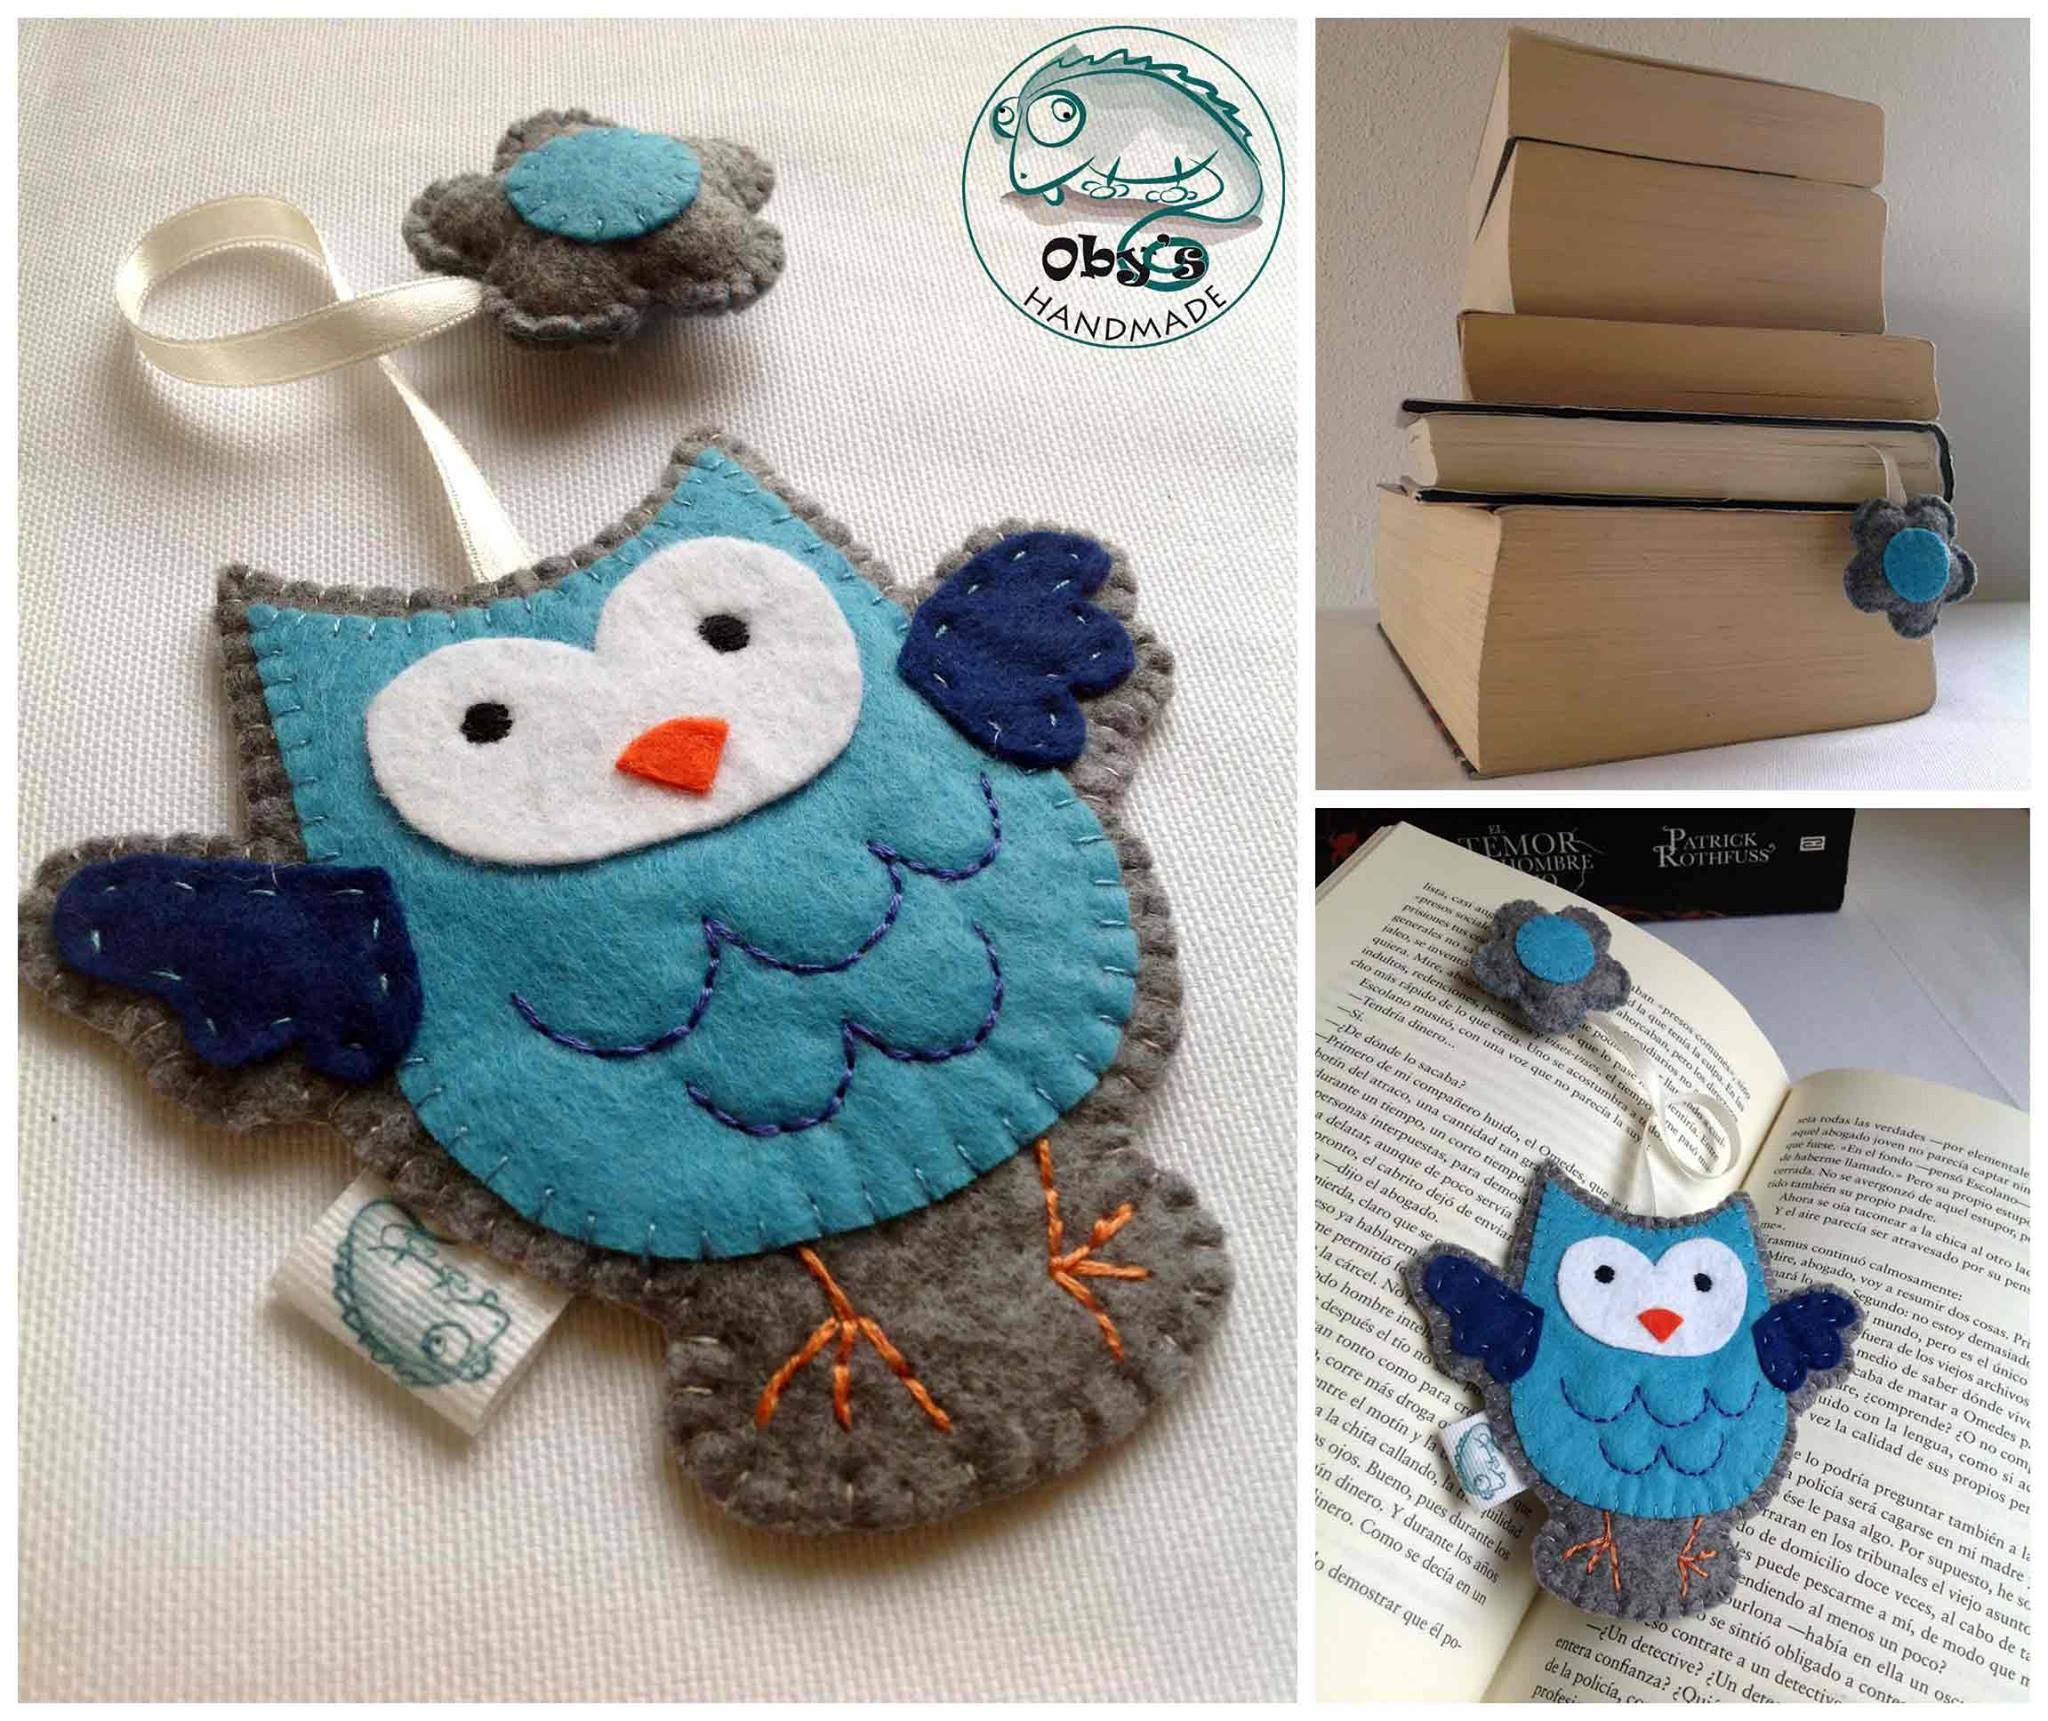 Obys handmade idea regalo segnalibro in feltro con gufo bookmark with felt owl hand stitched bankloansurffo Gallery